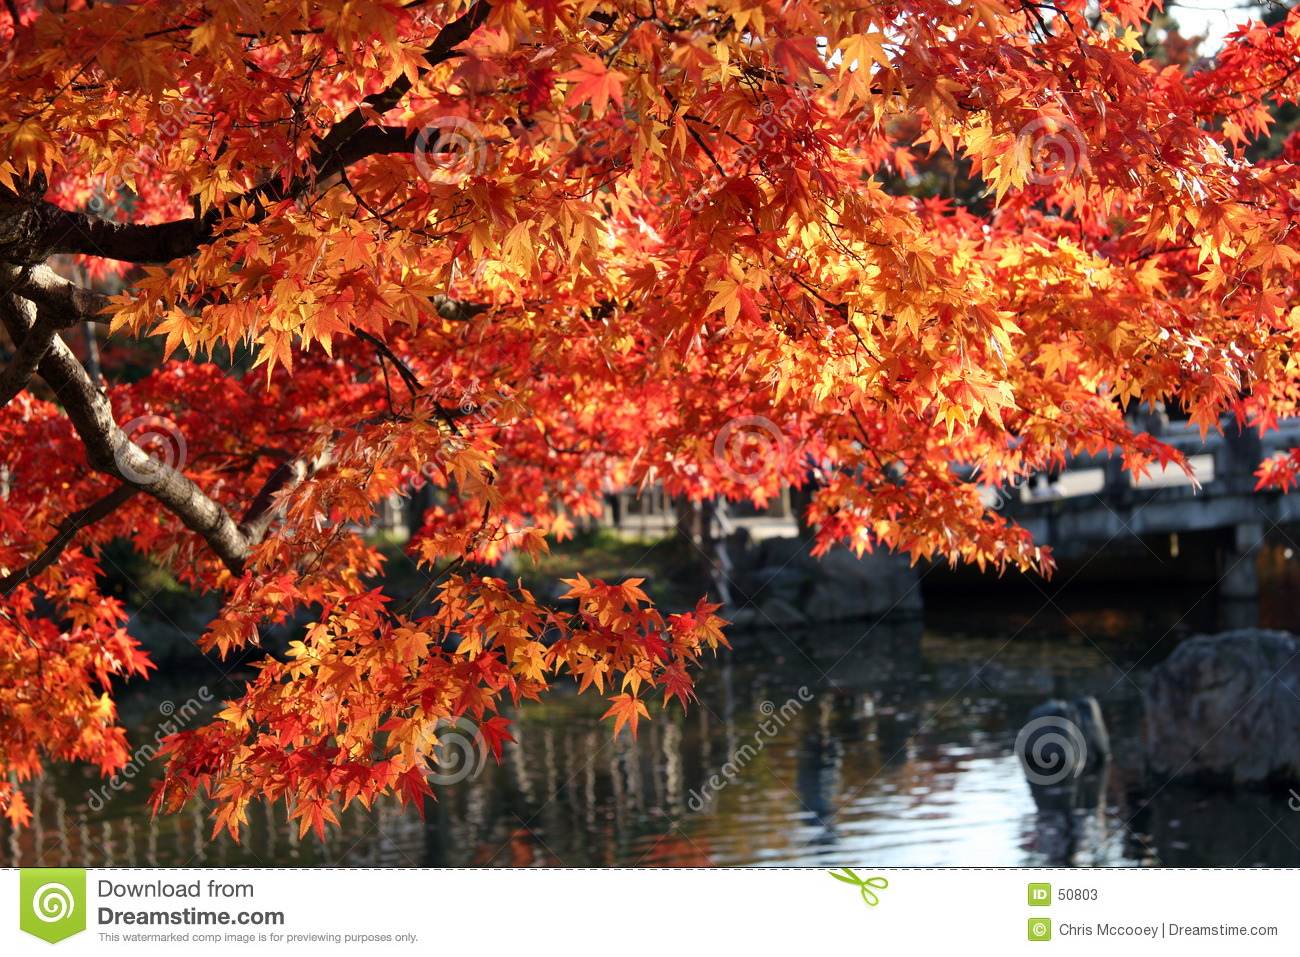 Fall leaves over water.